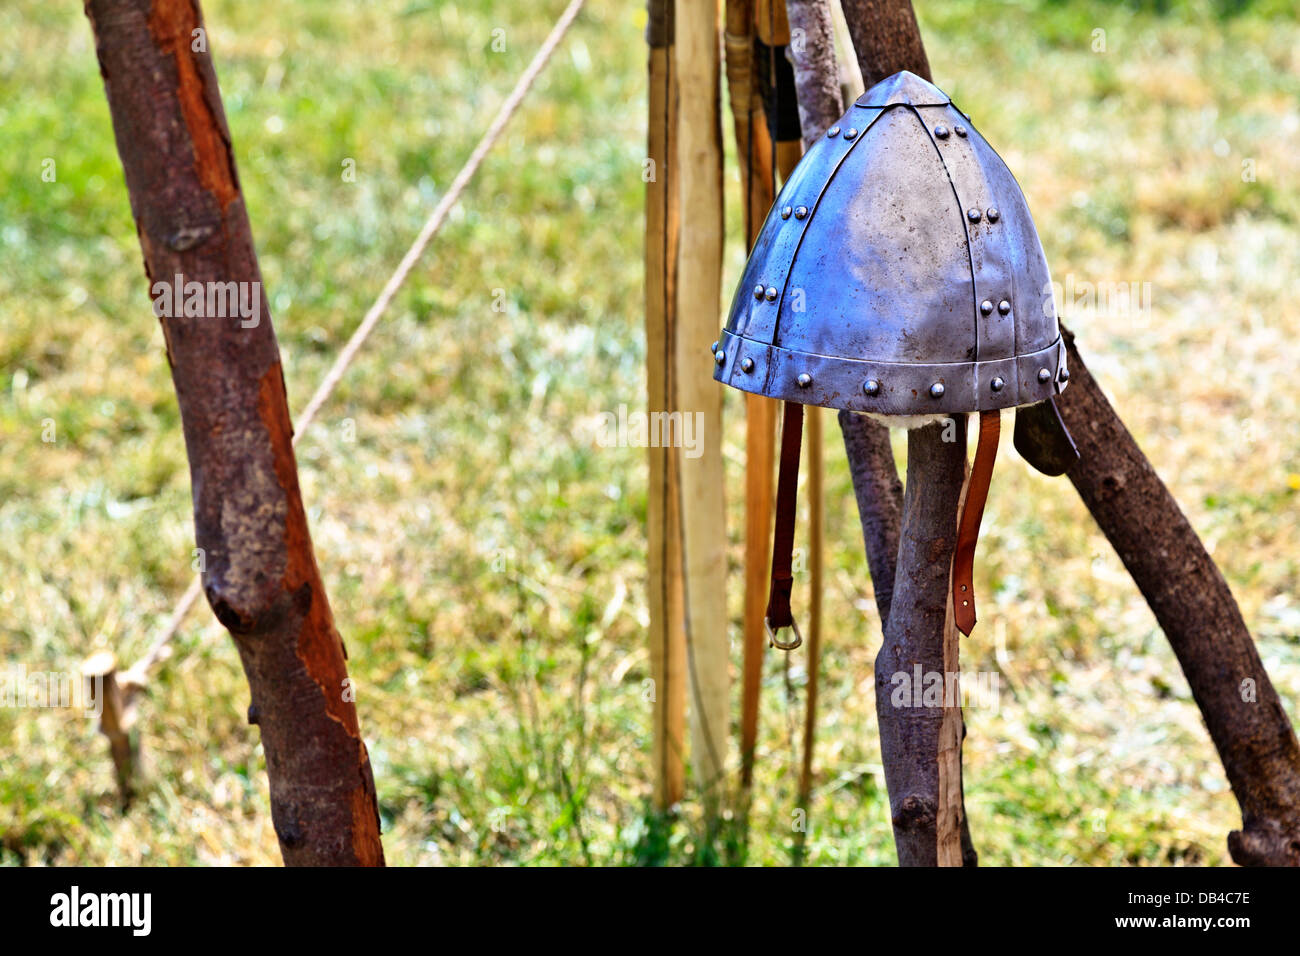 Viking metal helmet sitting on a wooden stake on display at Flag Fen Archaeological Park, Peterborough, England - Stock Image